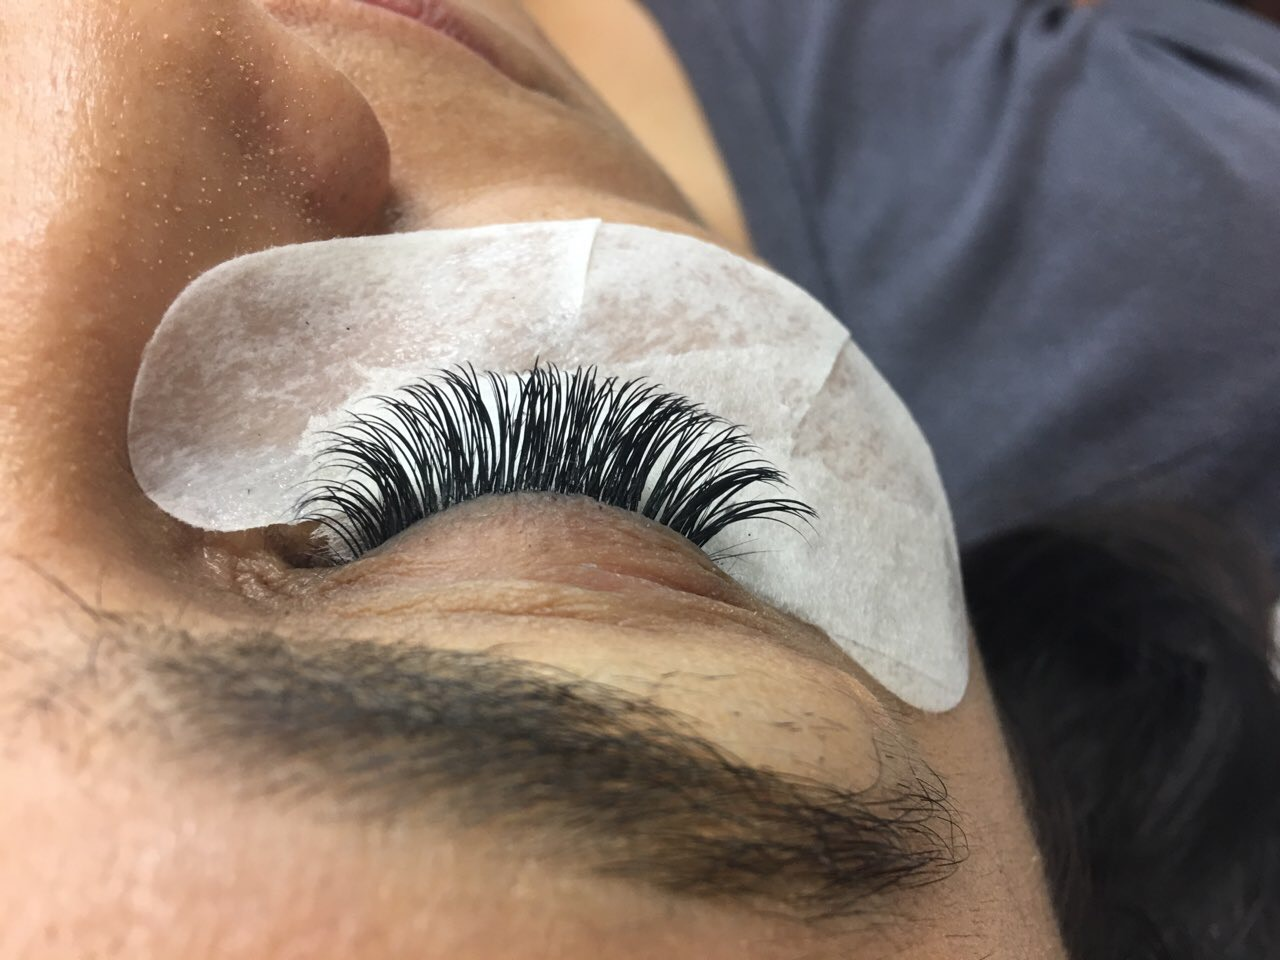 Eyelash & Eyebrows Photo